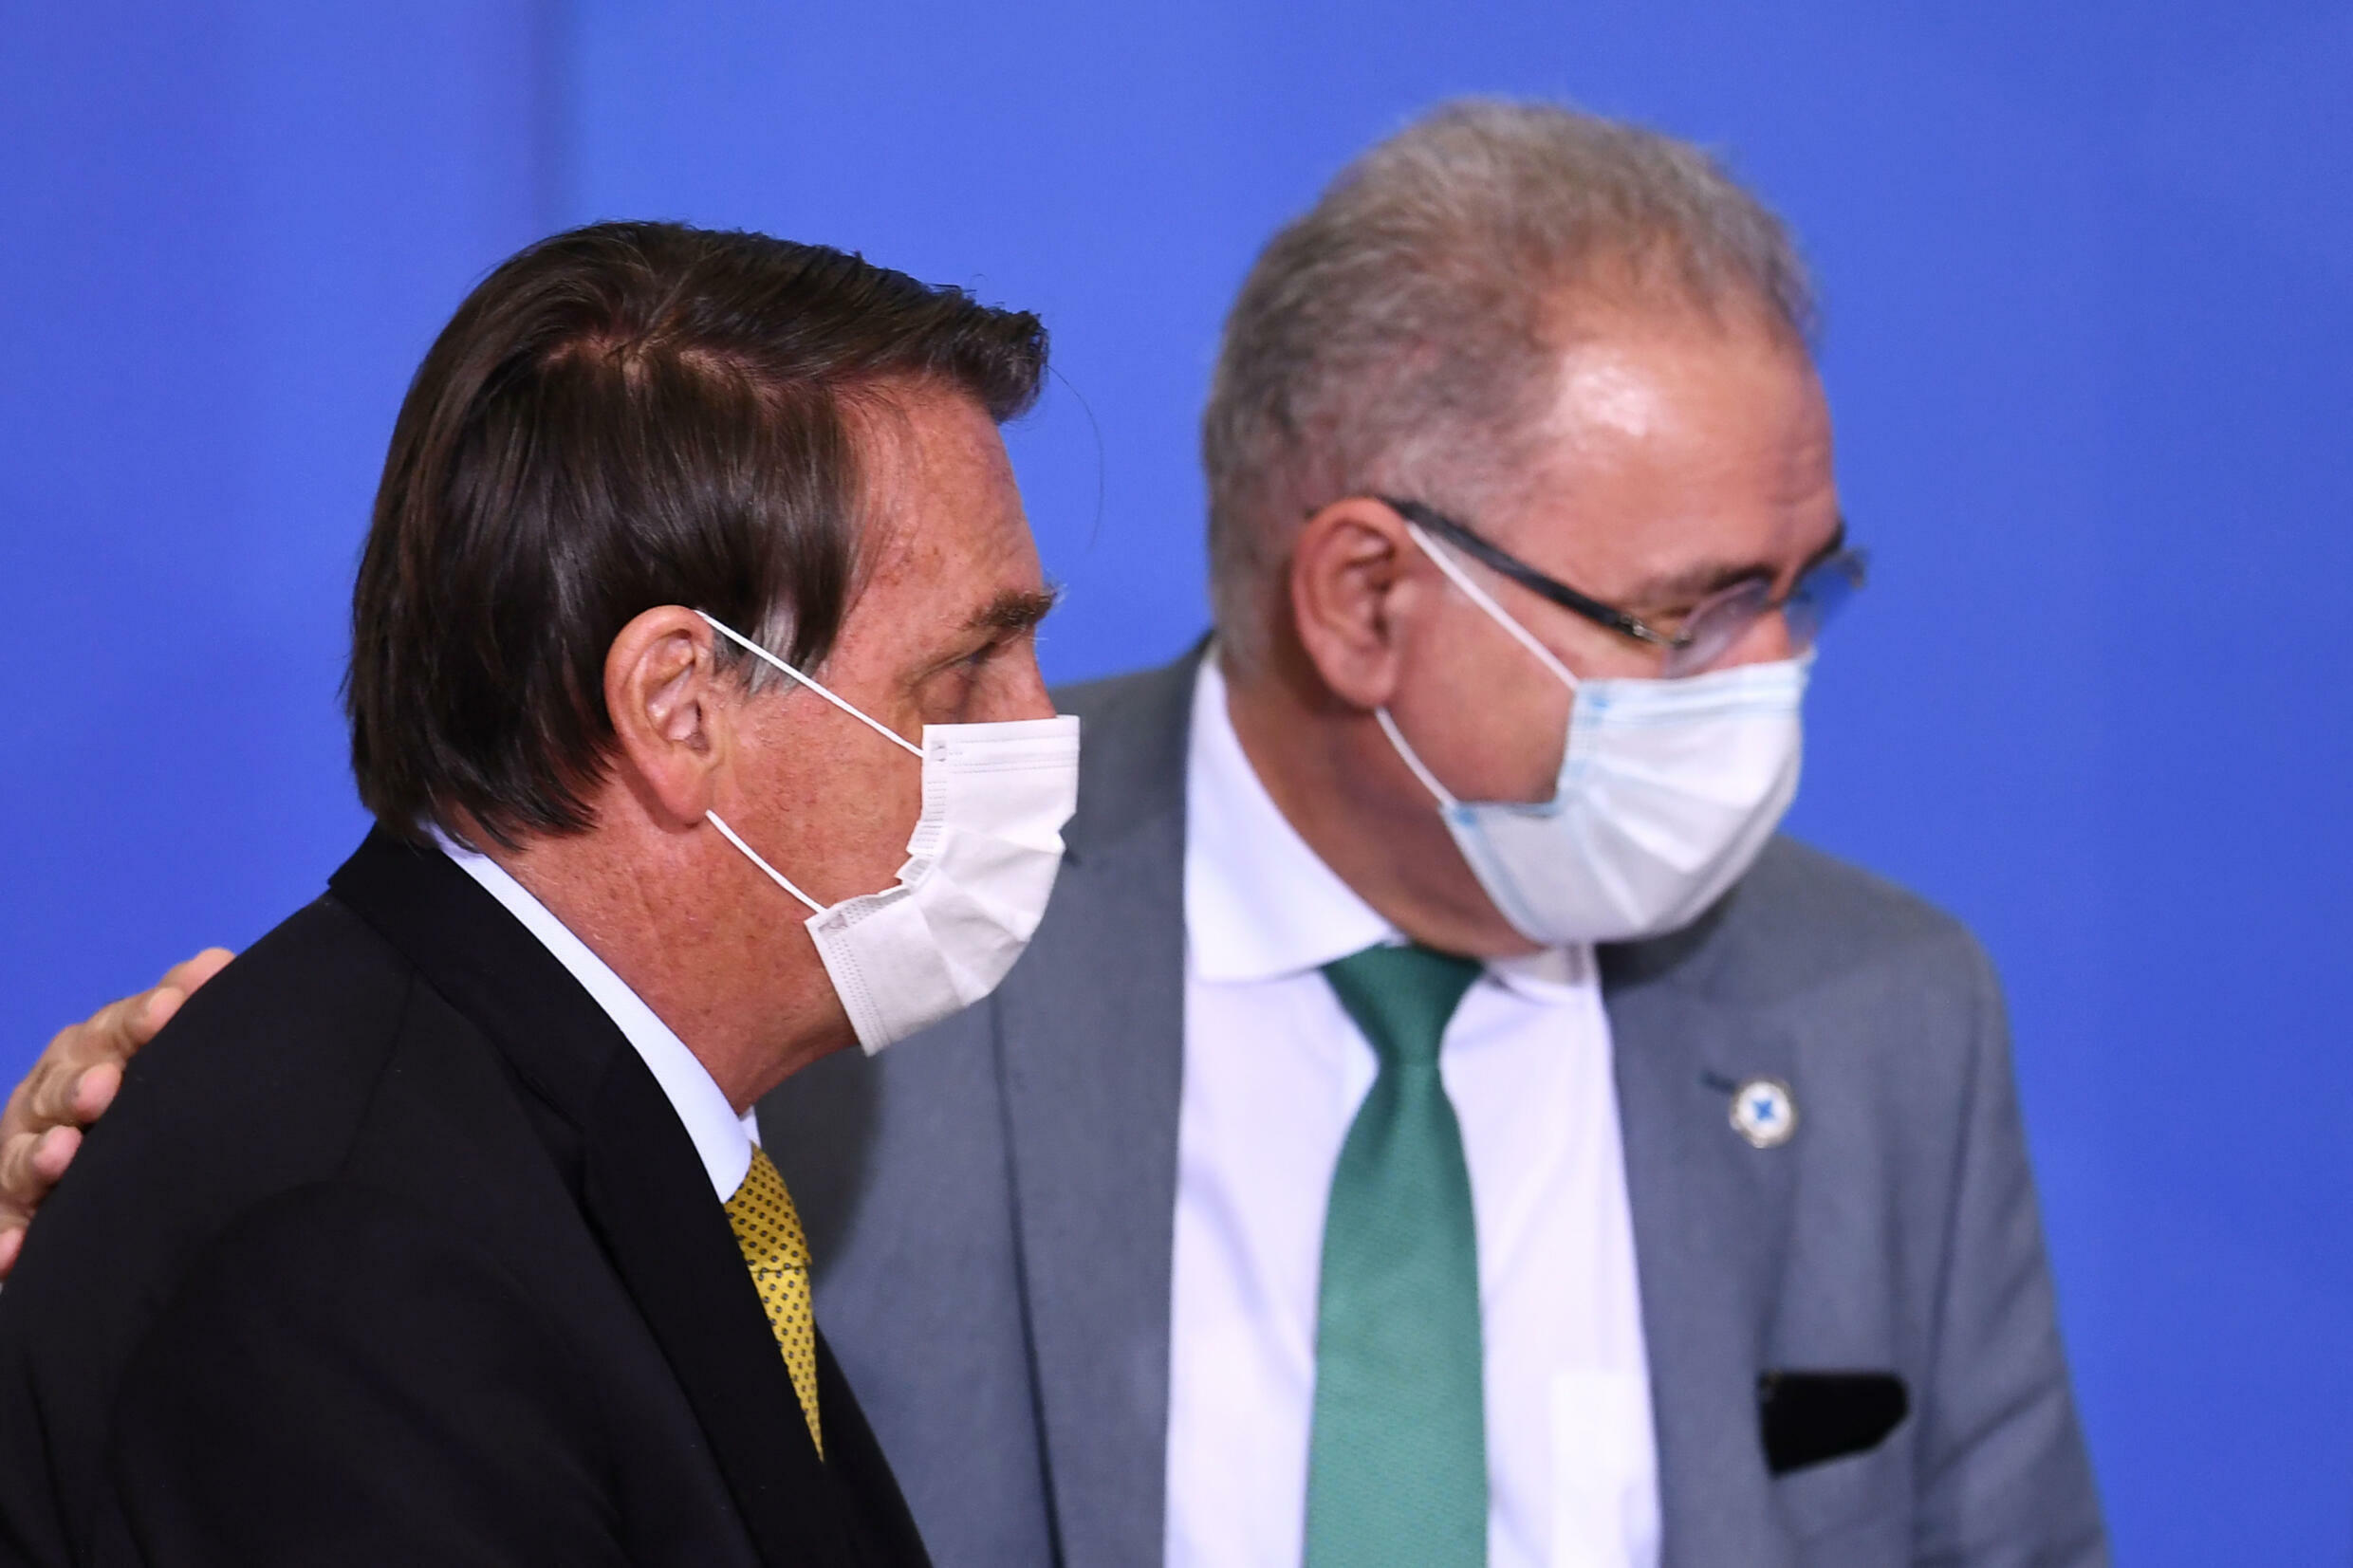 Brazilian Health Minister Marcelo Queiroga (R) with President Jair Bolsonaro (L) at an event in Brasilia on June 29, 2021. The health minister has tested positive during a meeting of the Un General Assembly in New York